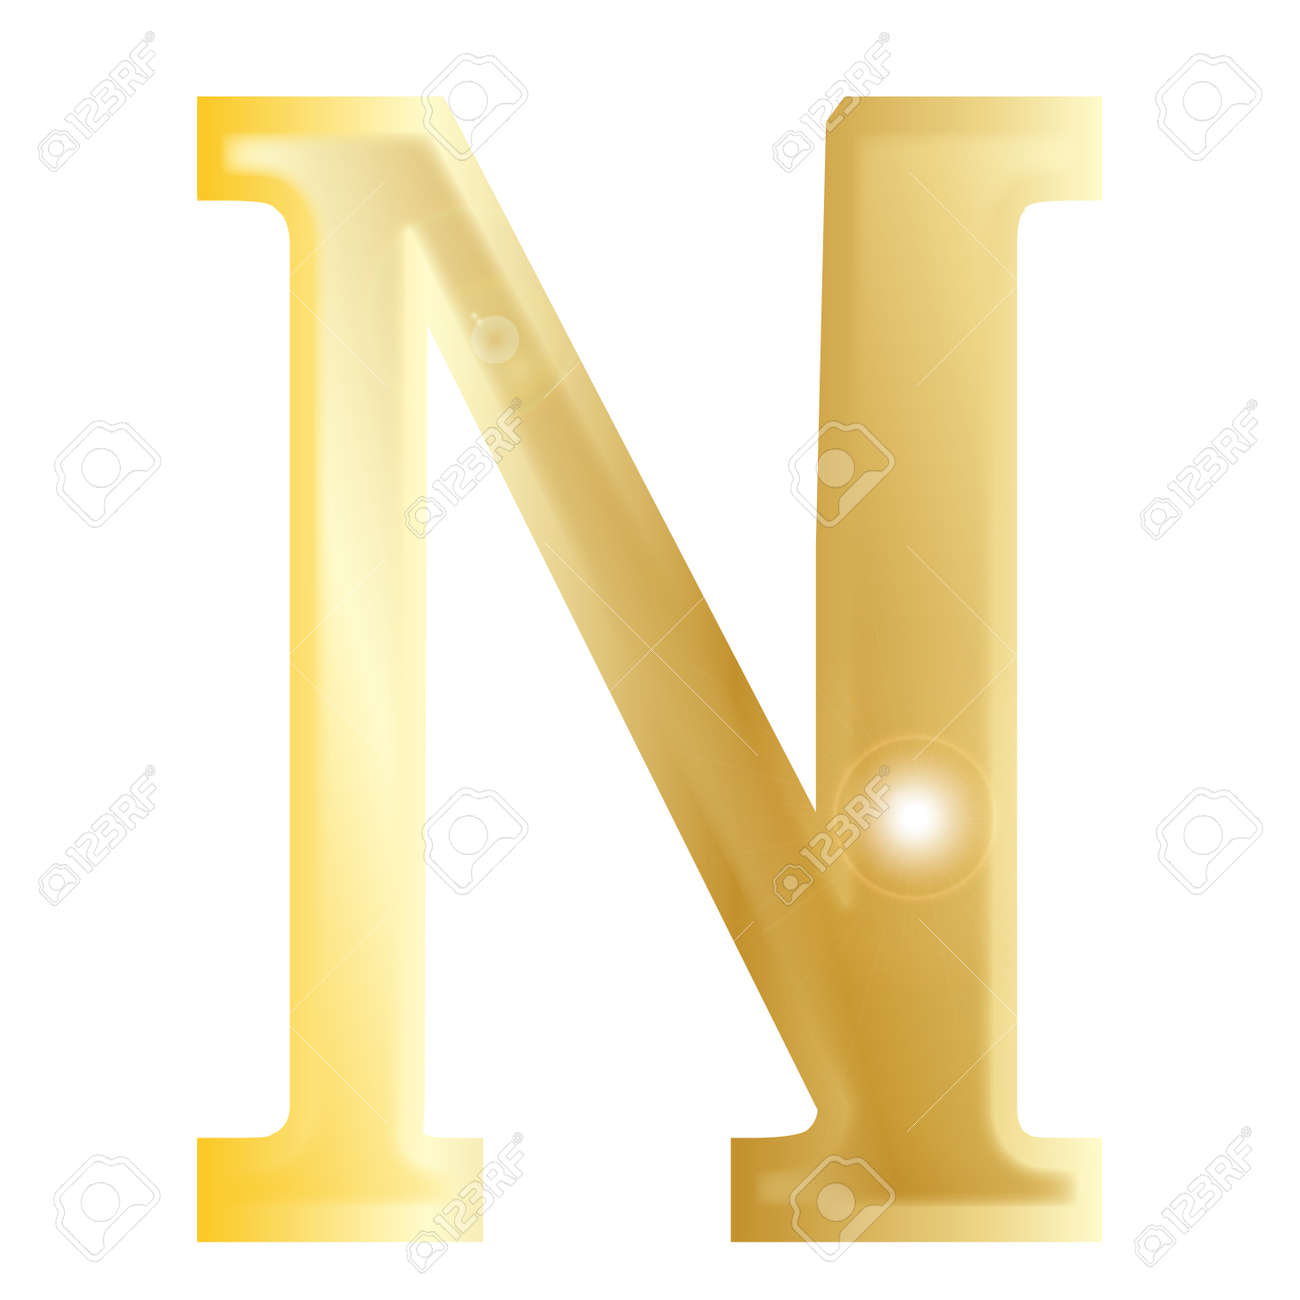 Nu A Letter From The Greek Alphabet Isolated Over A White